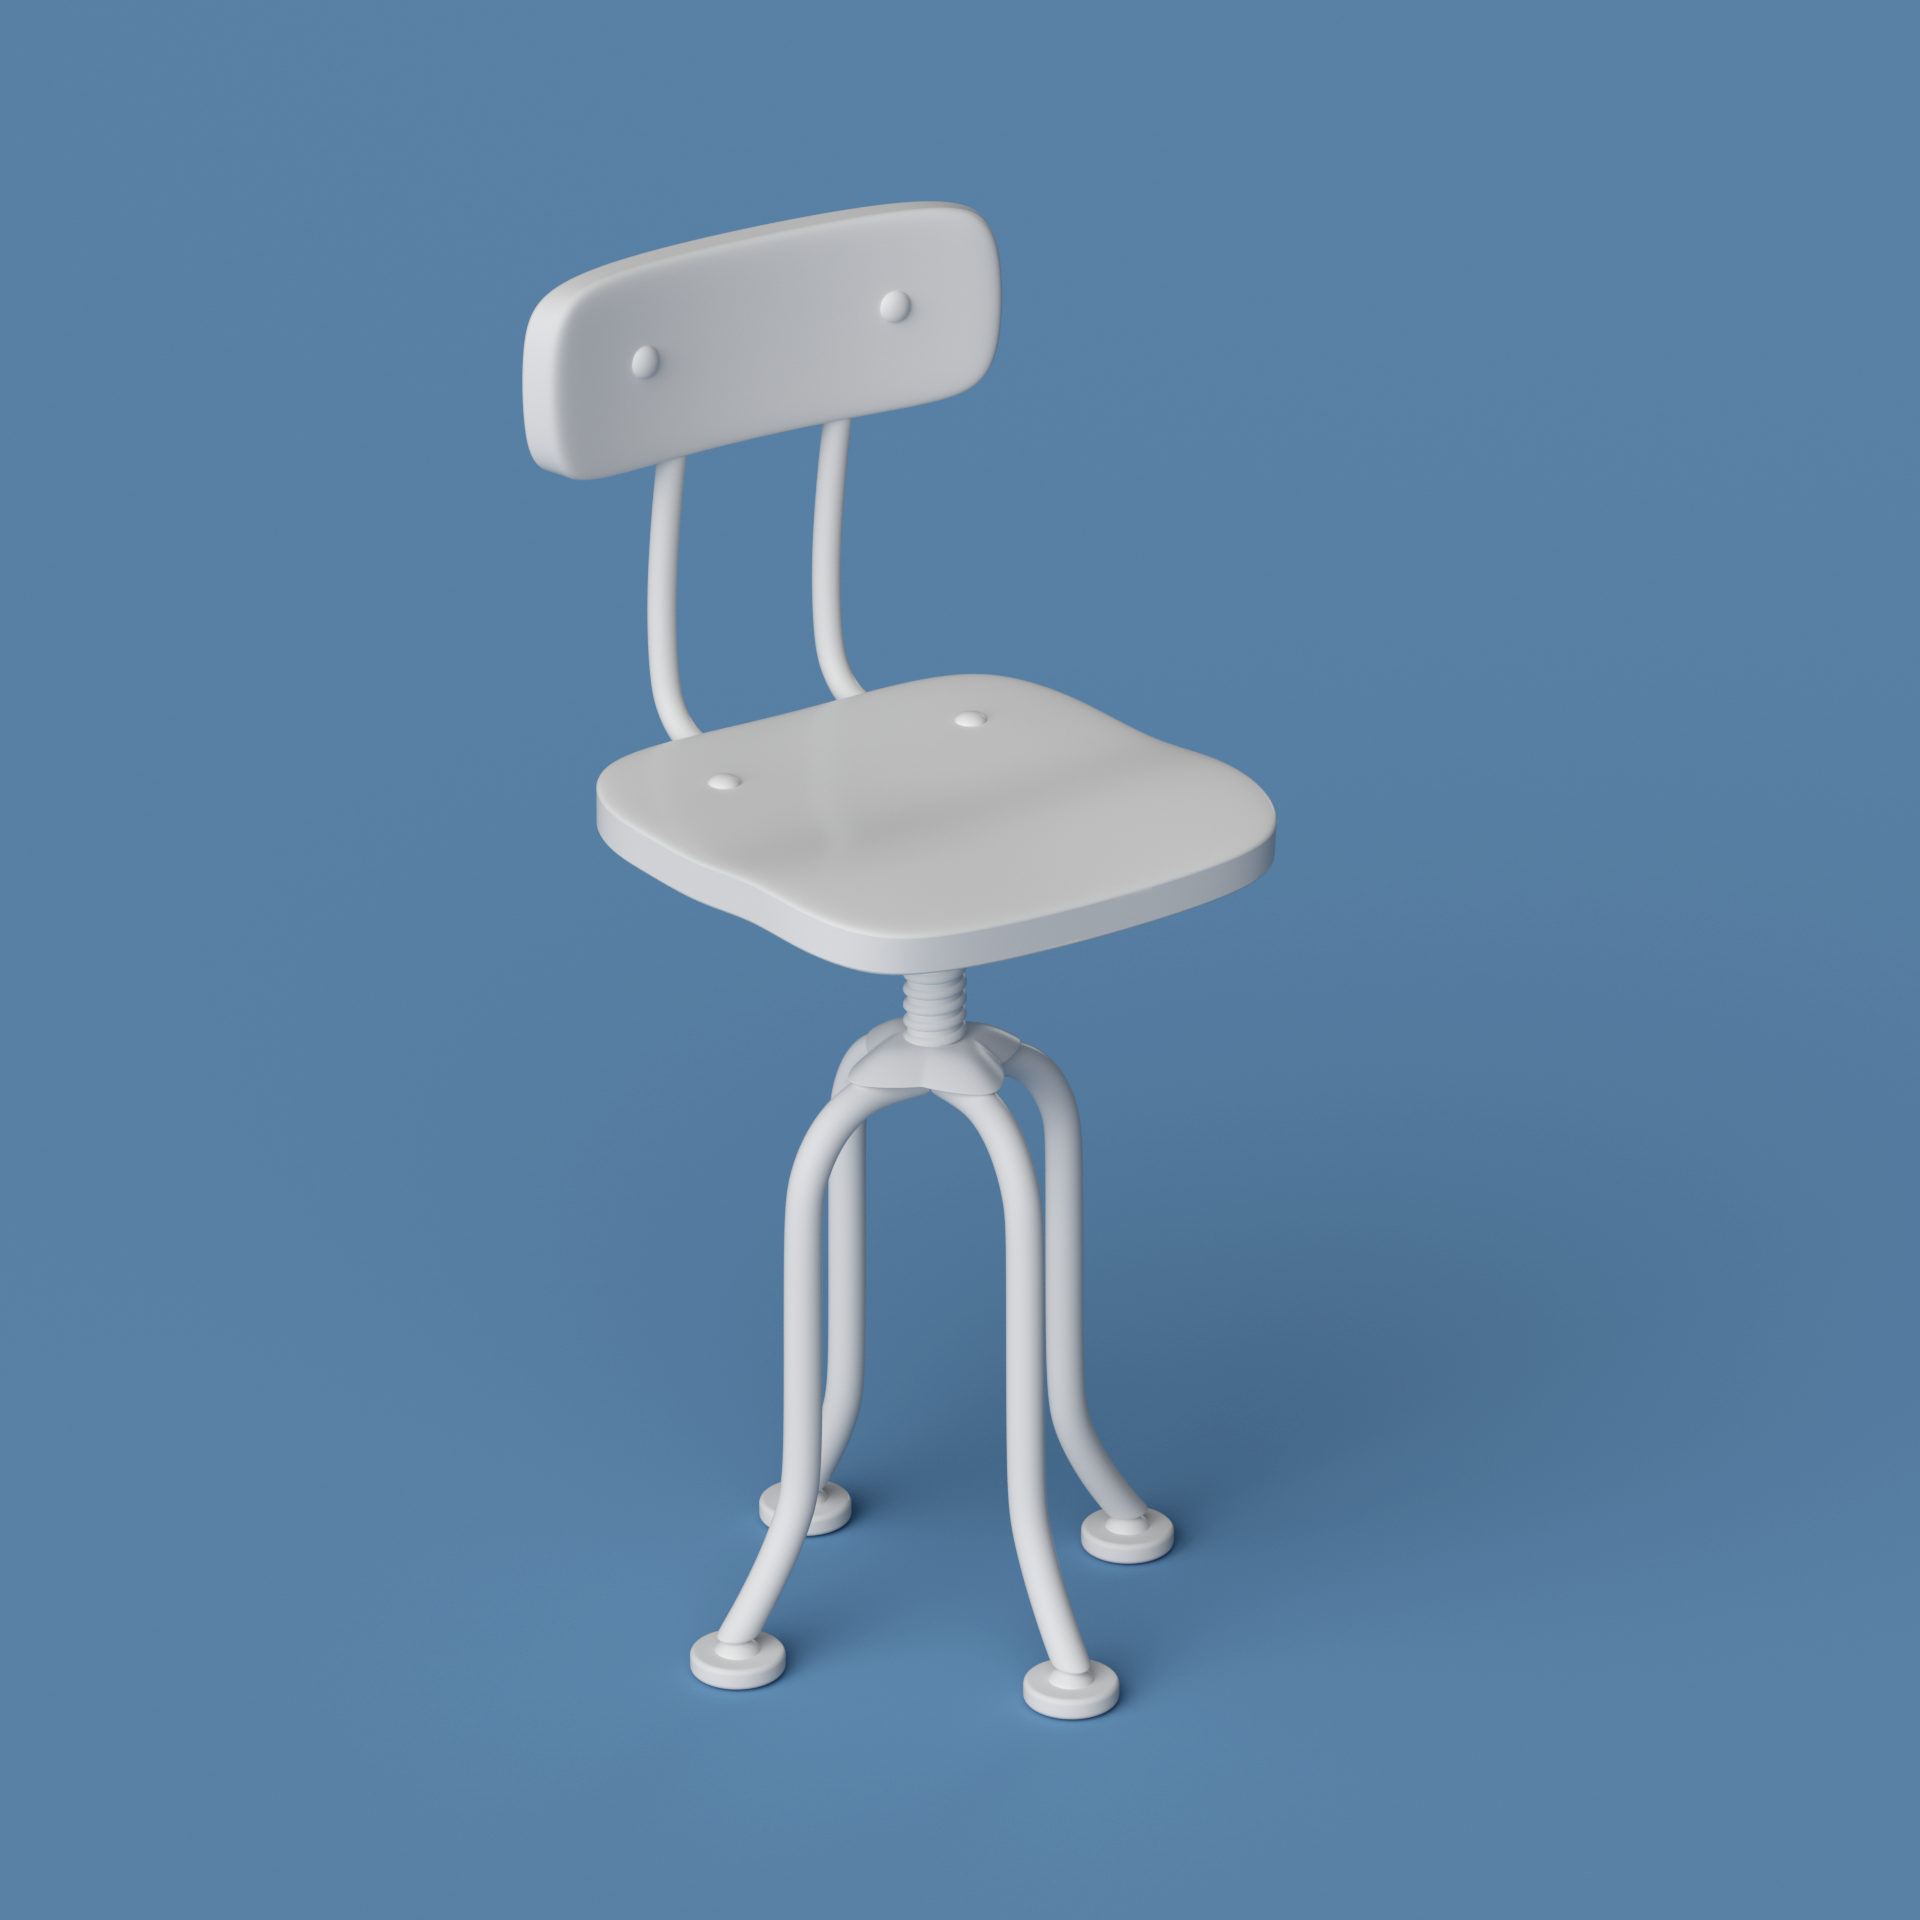 shop_chair.png